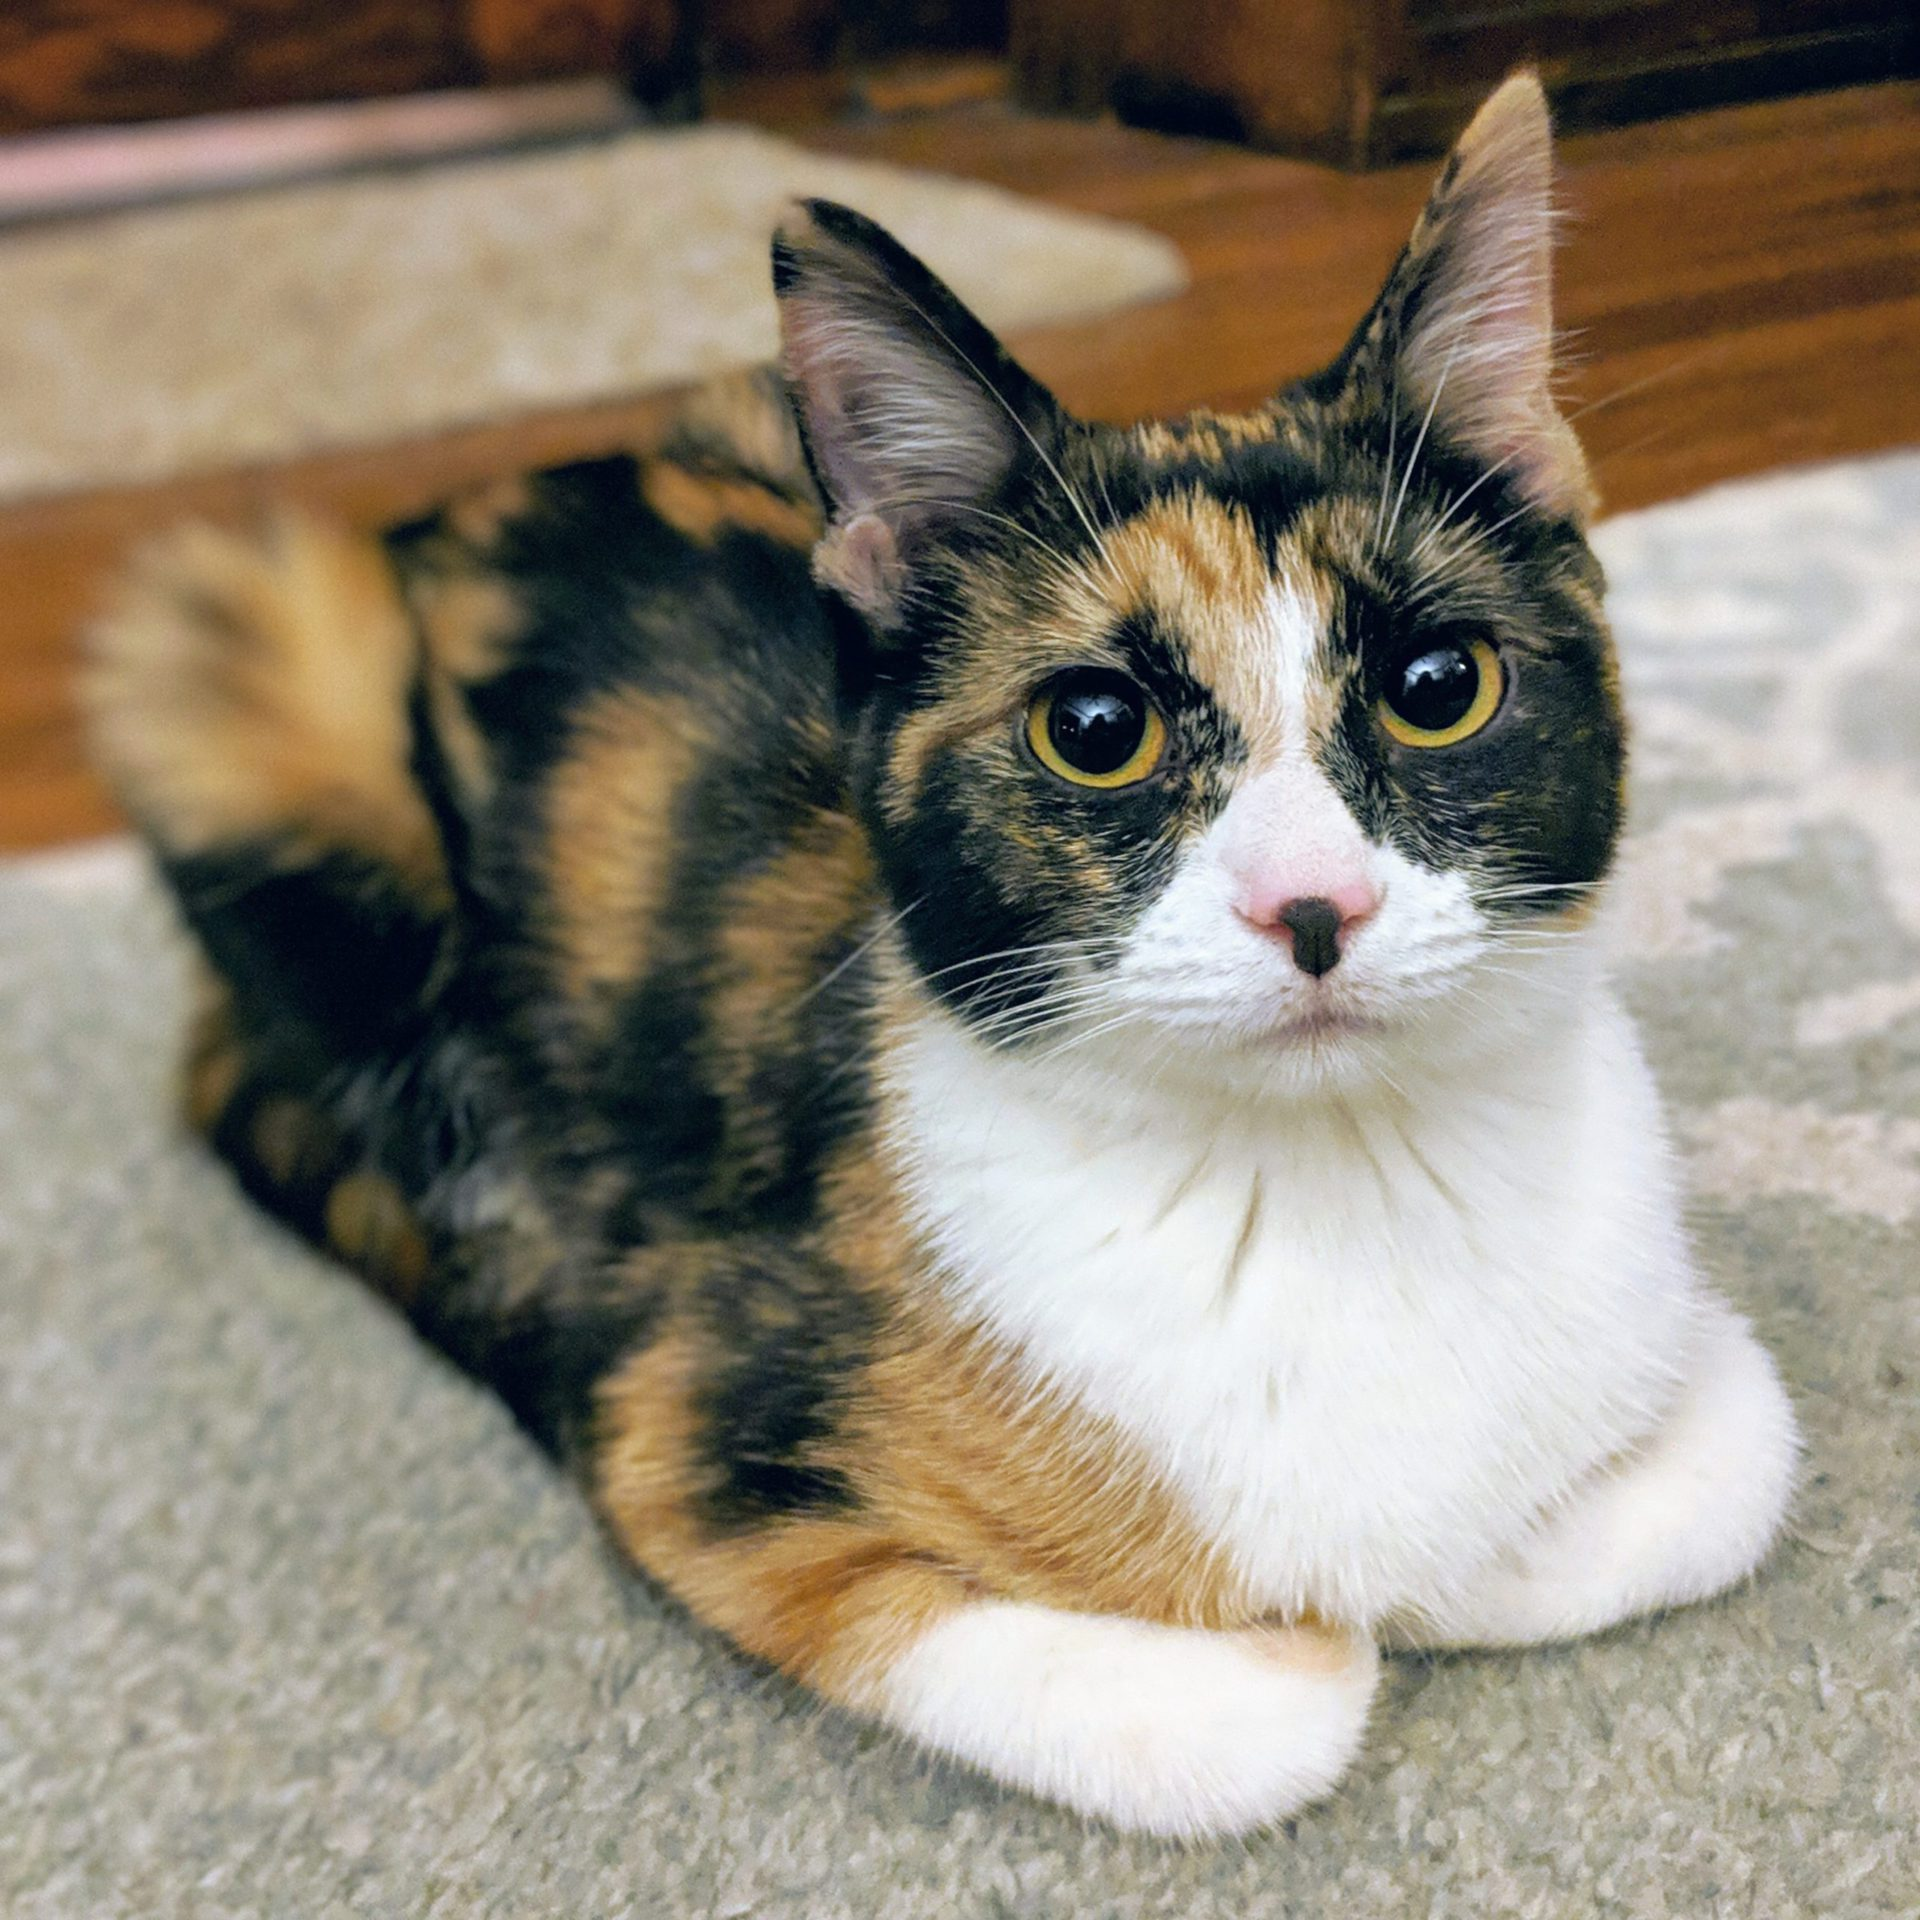 Calico kitten staring at the camera